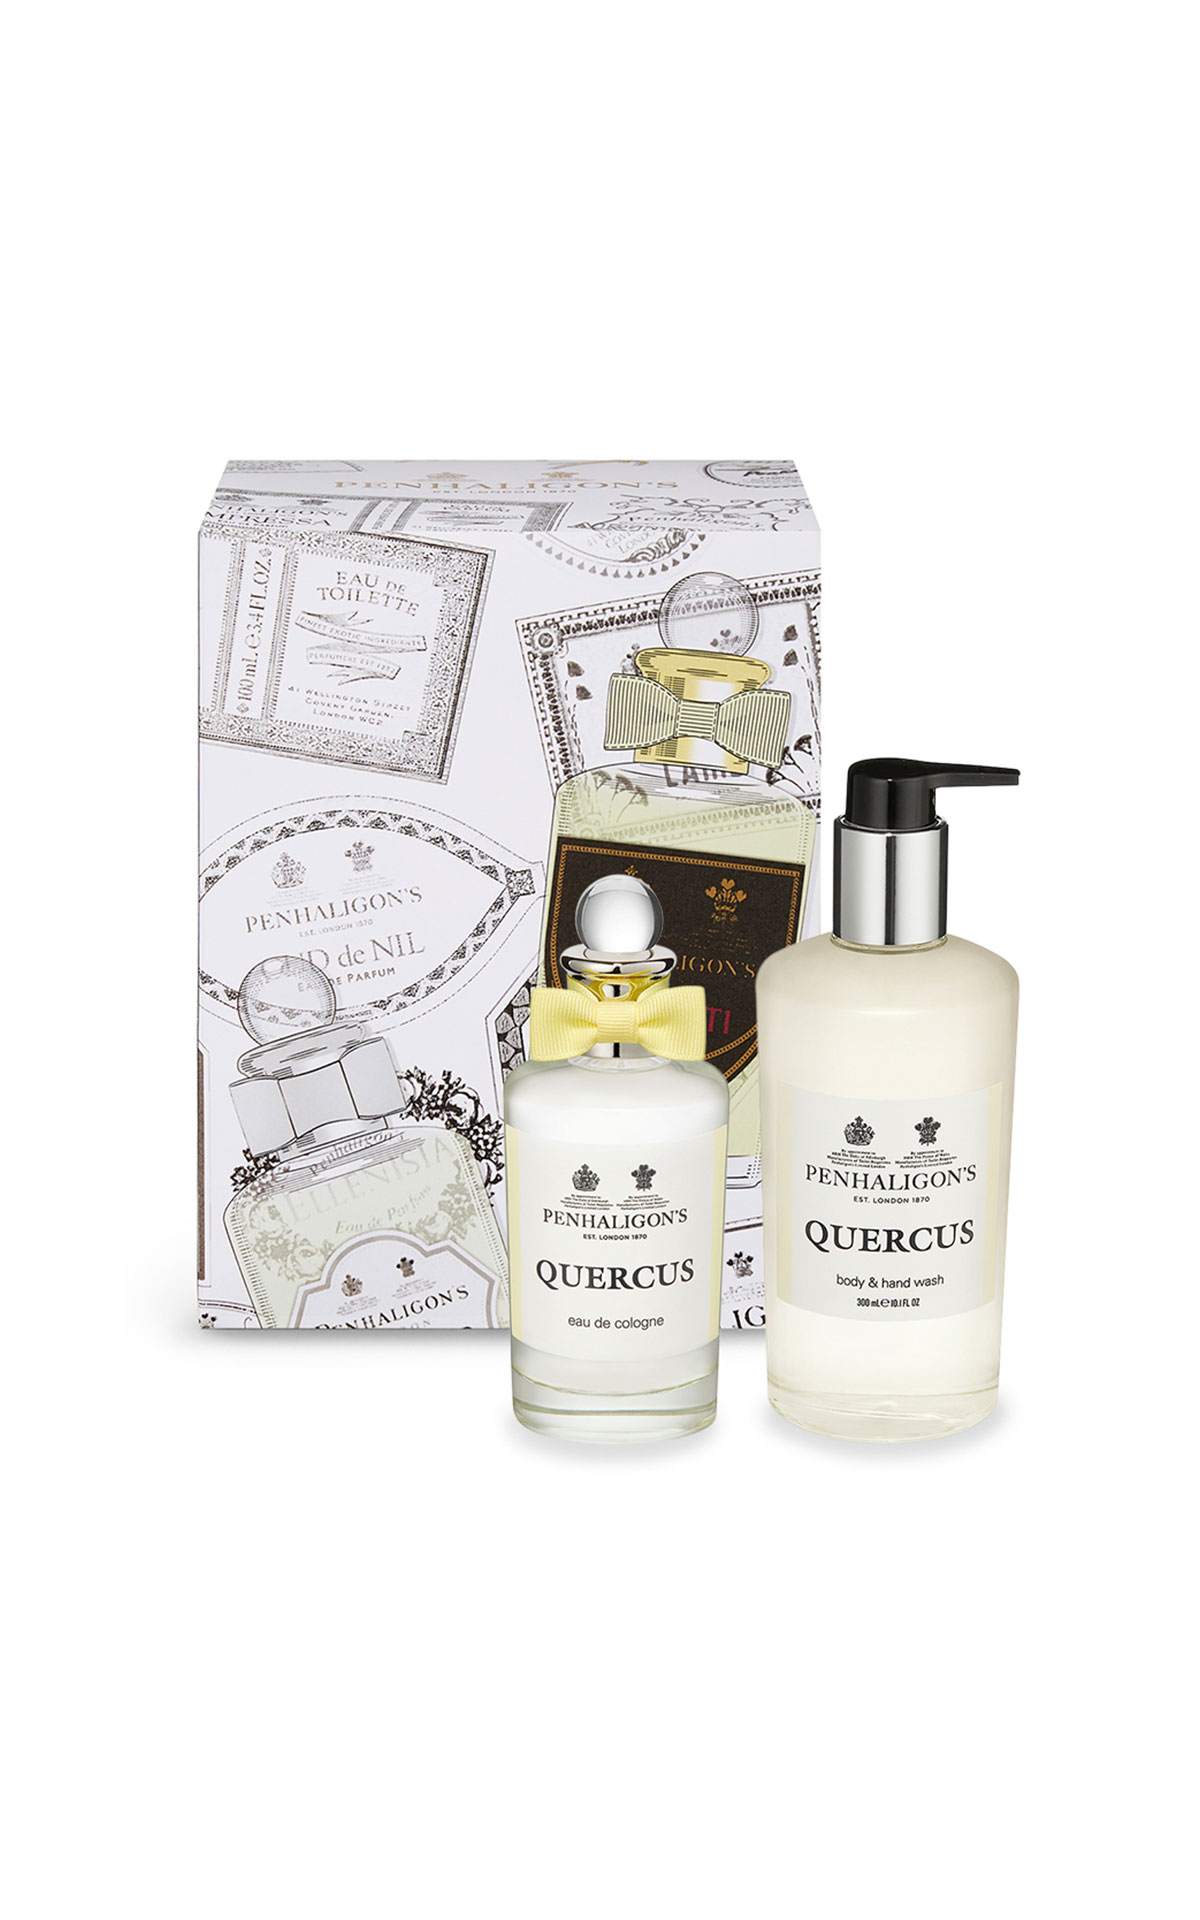 Penhaligon's Quercus body & hand wash from Bicester Village